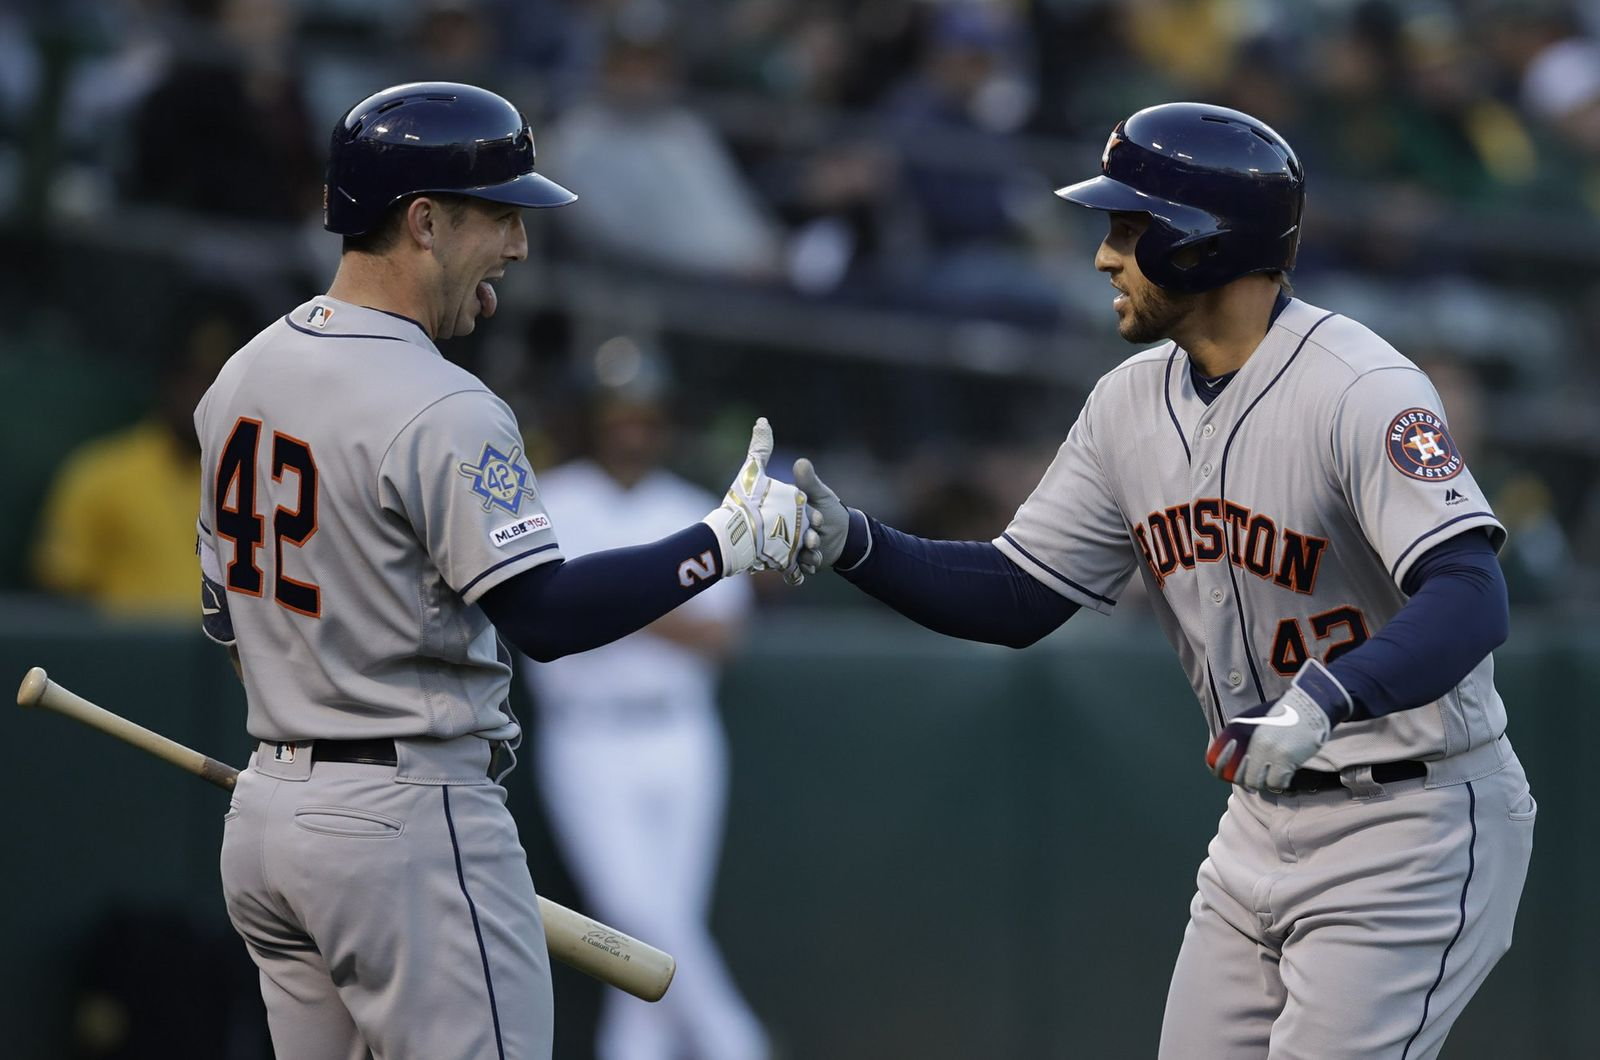 Houston Astros' George Springer, right, celebrates with Alex Bregman after hitting a home run off Oakland Athletics' Marco Estrada in the first inning of a baseball game, Tuesday, April 16, 2019, in Oakland, Calif. (AP Photo/Ben Margot)